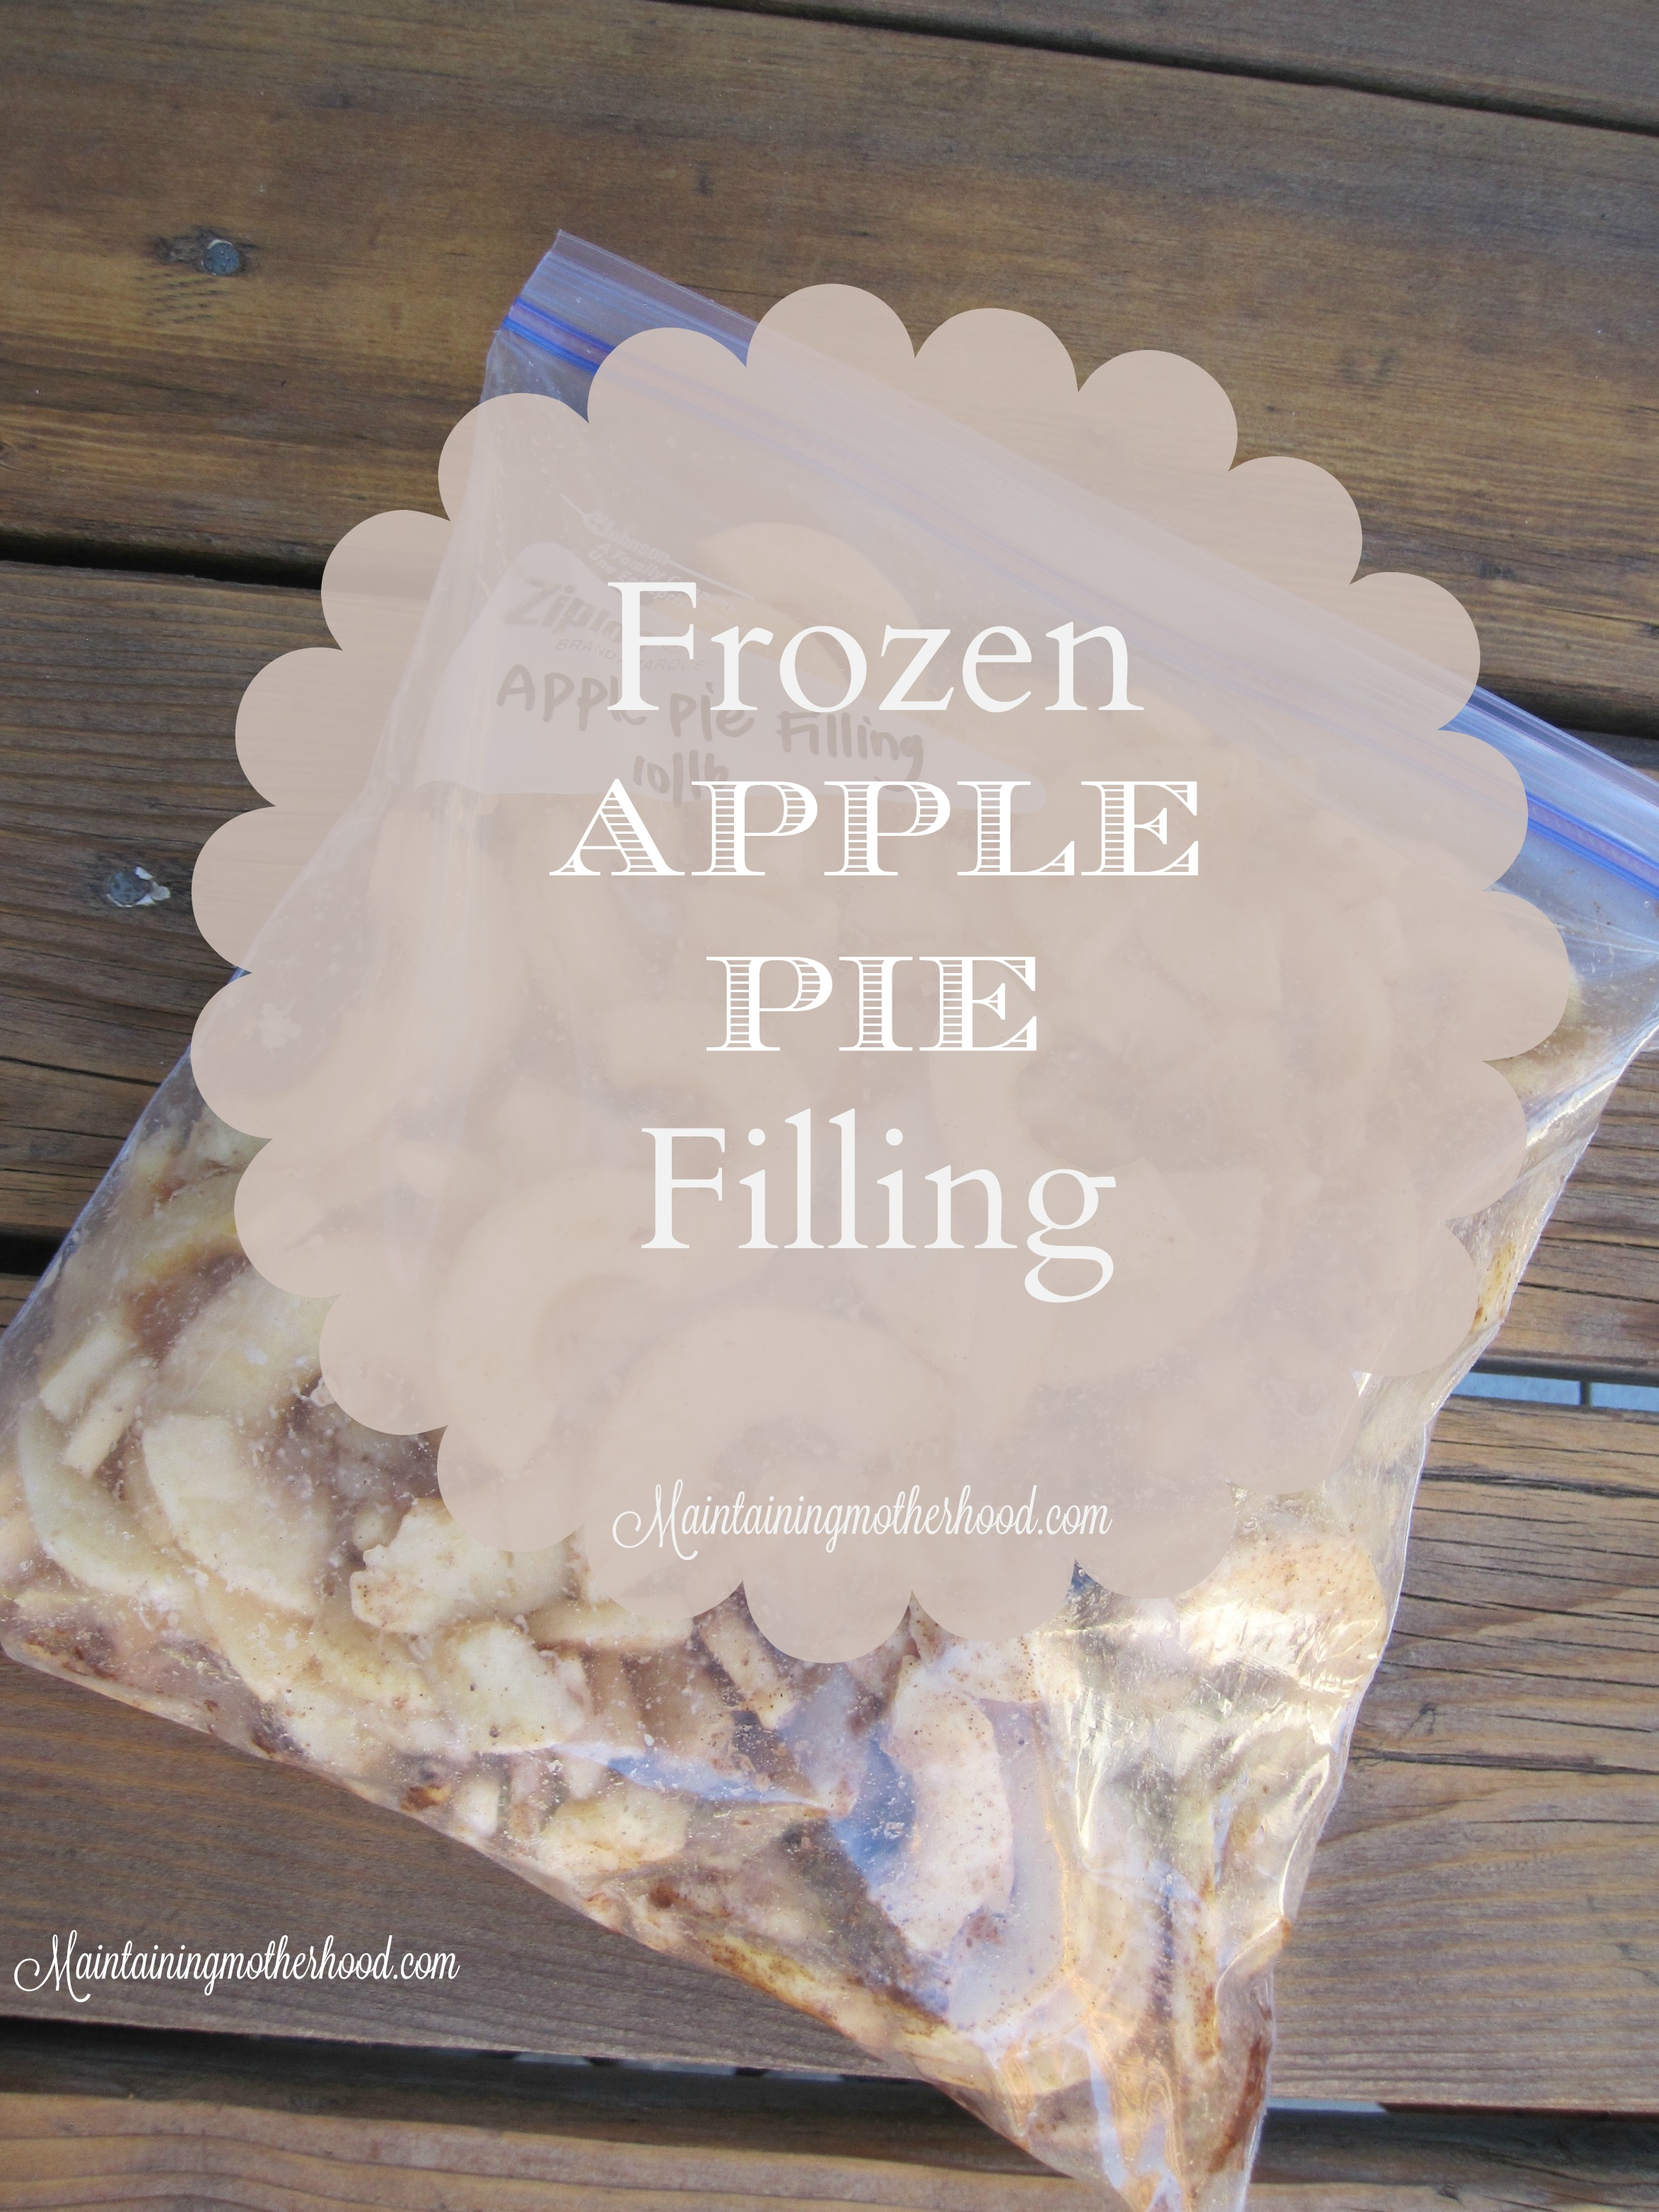 If you are looking to prepare apple pie in advance for the holidays, here's a simple way to whip up apple pie filling in bulk and always have it on hand!